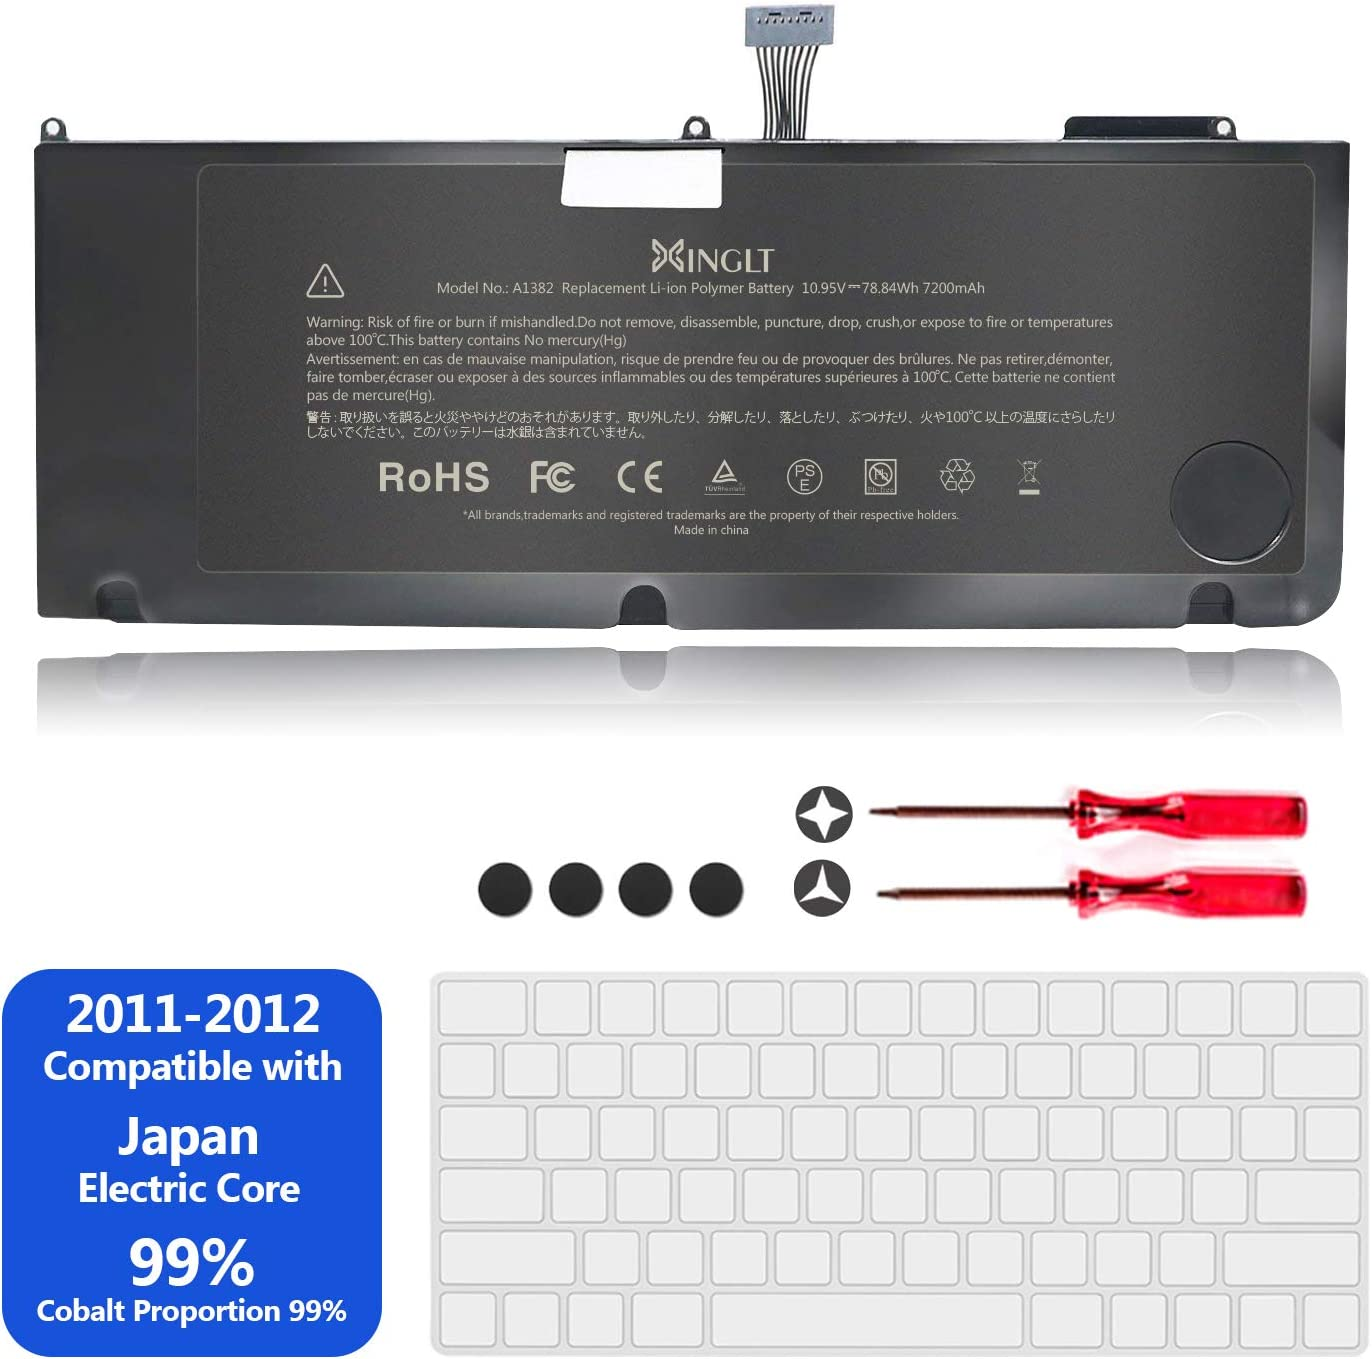 "A1382 Laptop Battery for Apple MacBook Pro A1286 15 inch [EMC Number:2353-1, 2563,2556] Only for MacBook Pro A1286 15"" Early 2011, Late 2011, Mid 2012 Version High Capacity 7200mAh 10.95V/78.84Wh"